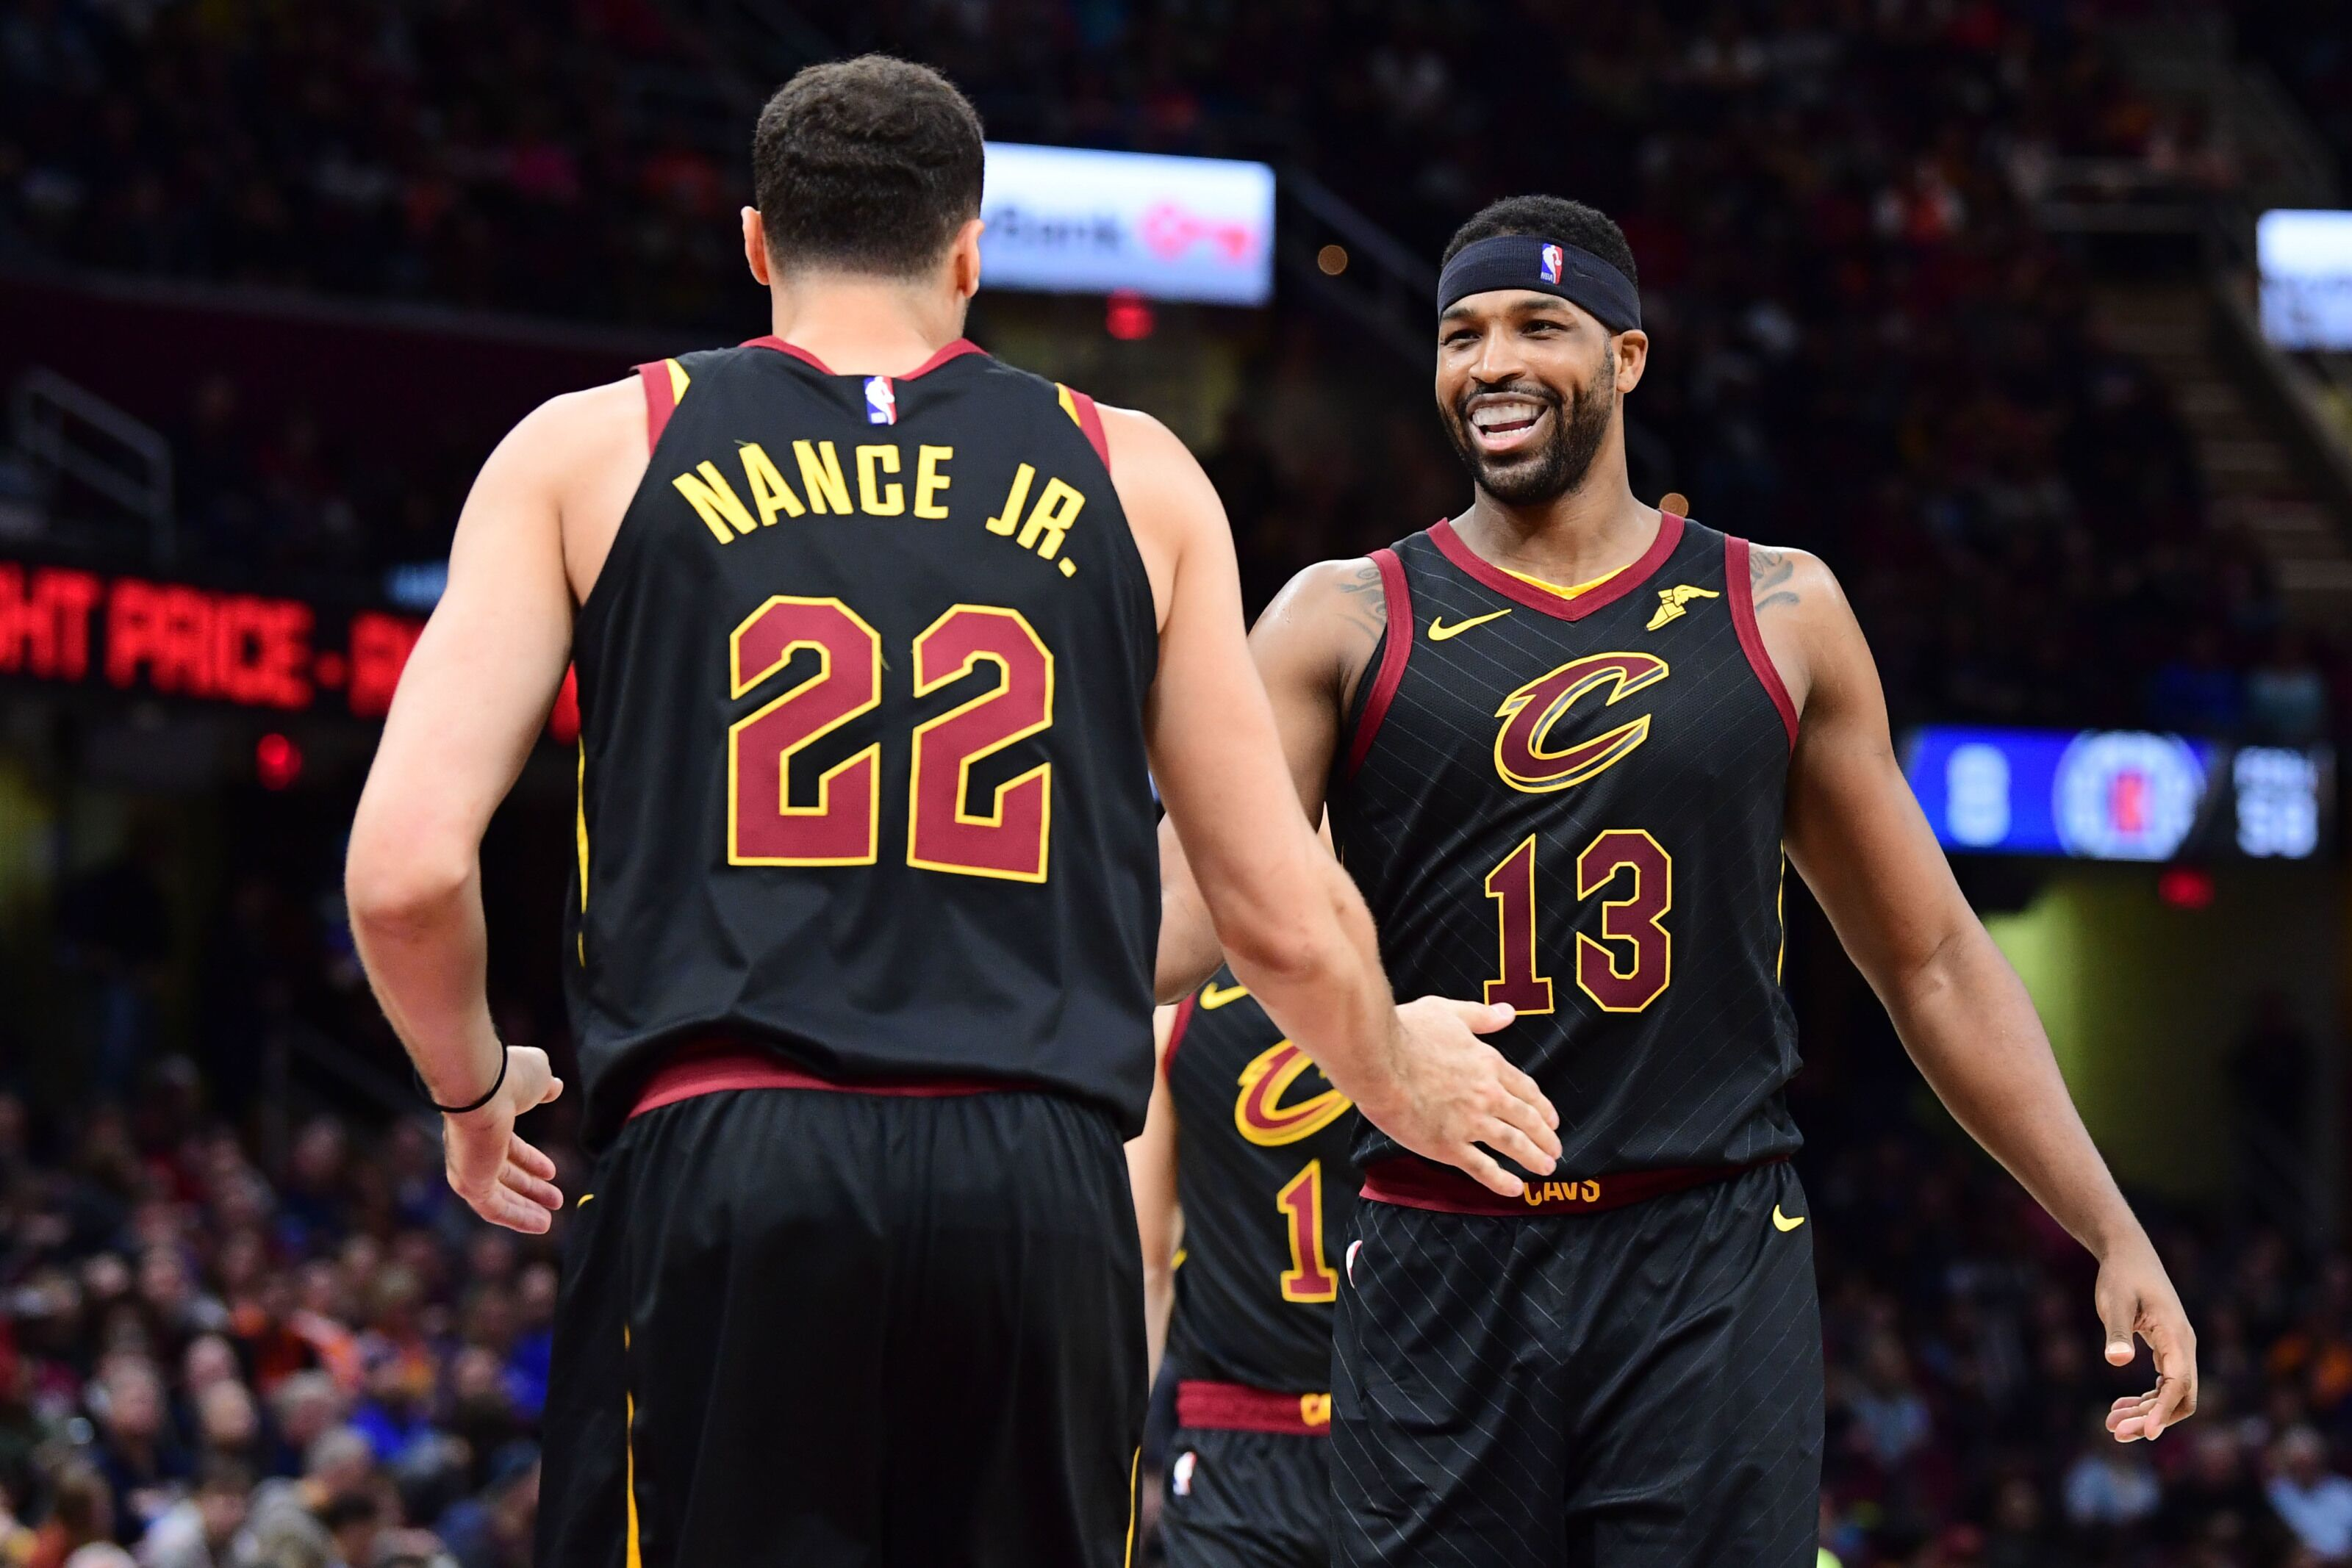 d7944d6b33b Cleveland Cavaliers: Top 10 moments of the 2018-19 NBA season - Page 11